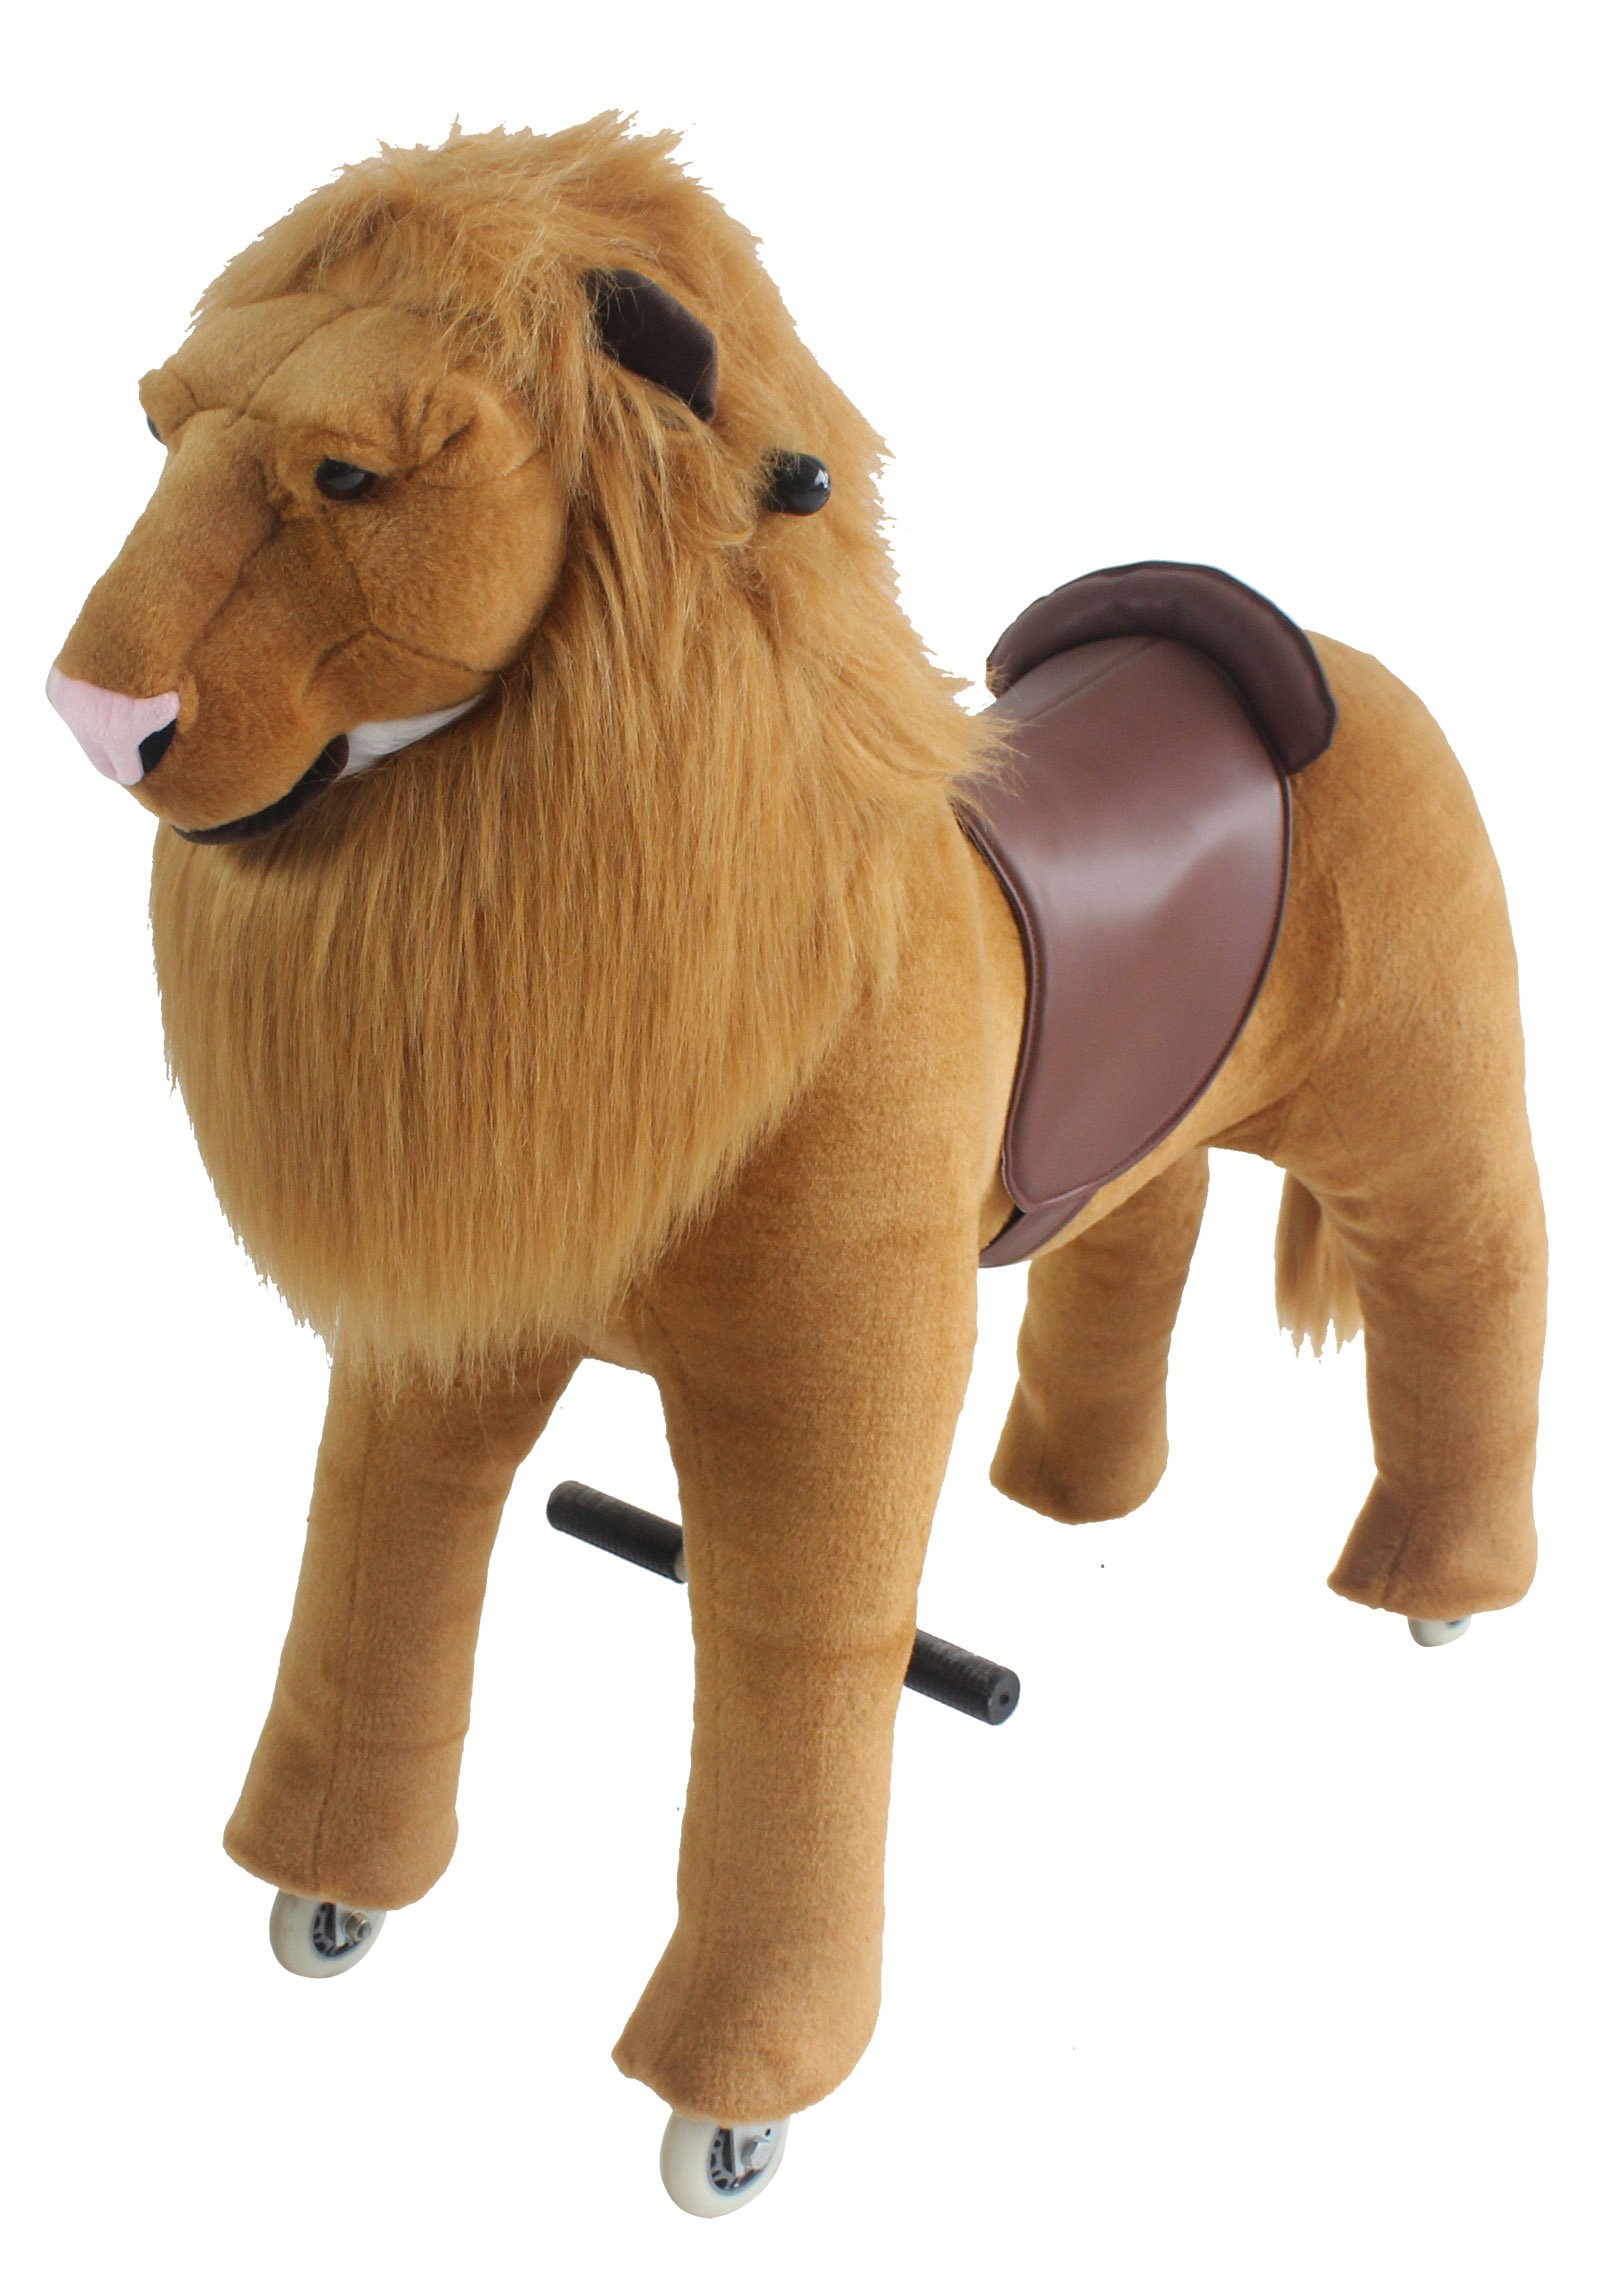 Mechanical Ride on Lion Simulated Horse Riding on Toy Ride-on without Battery or Power: More Comfortable Riding with Gallop Motion for Kids 5-12 Years